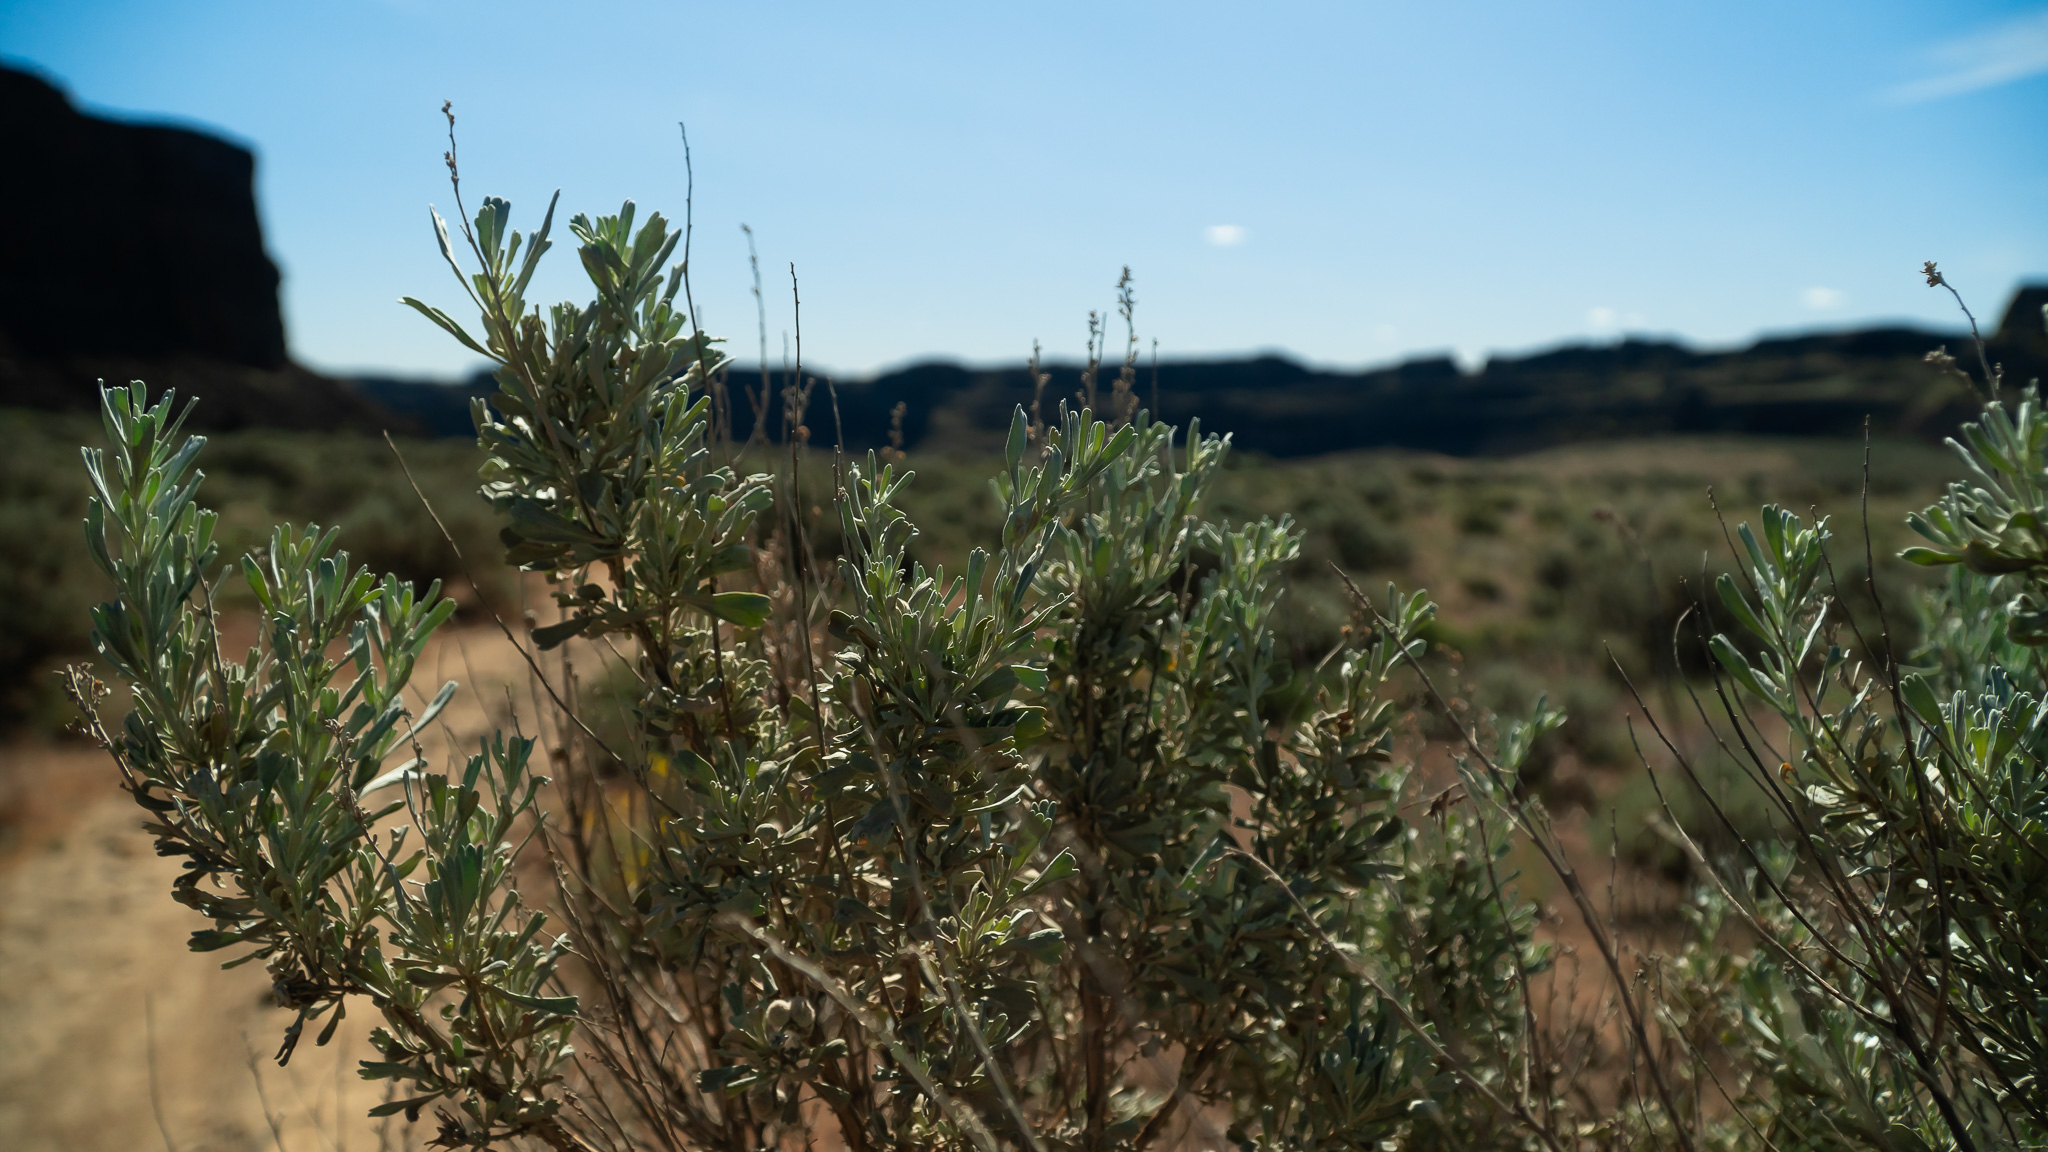 Big sagebrush (Artemisia tridentata) was found every where but made a nice change from the foliage we're normally accustom too.